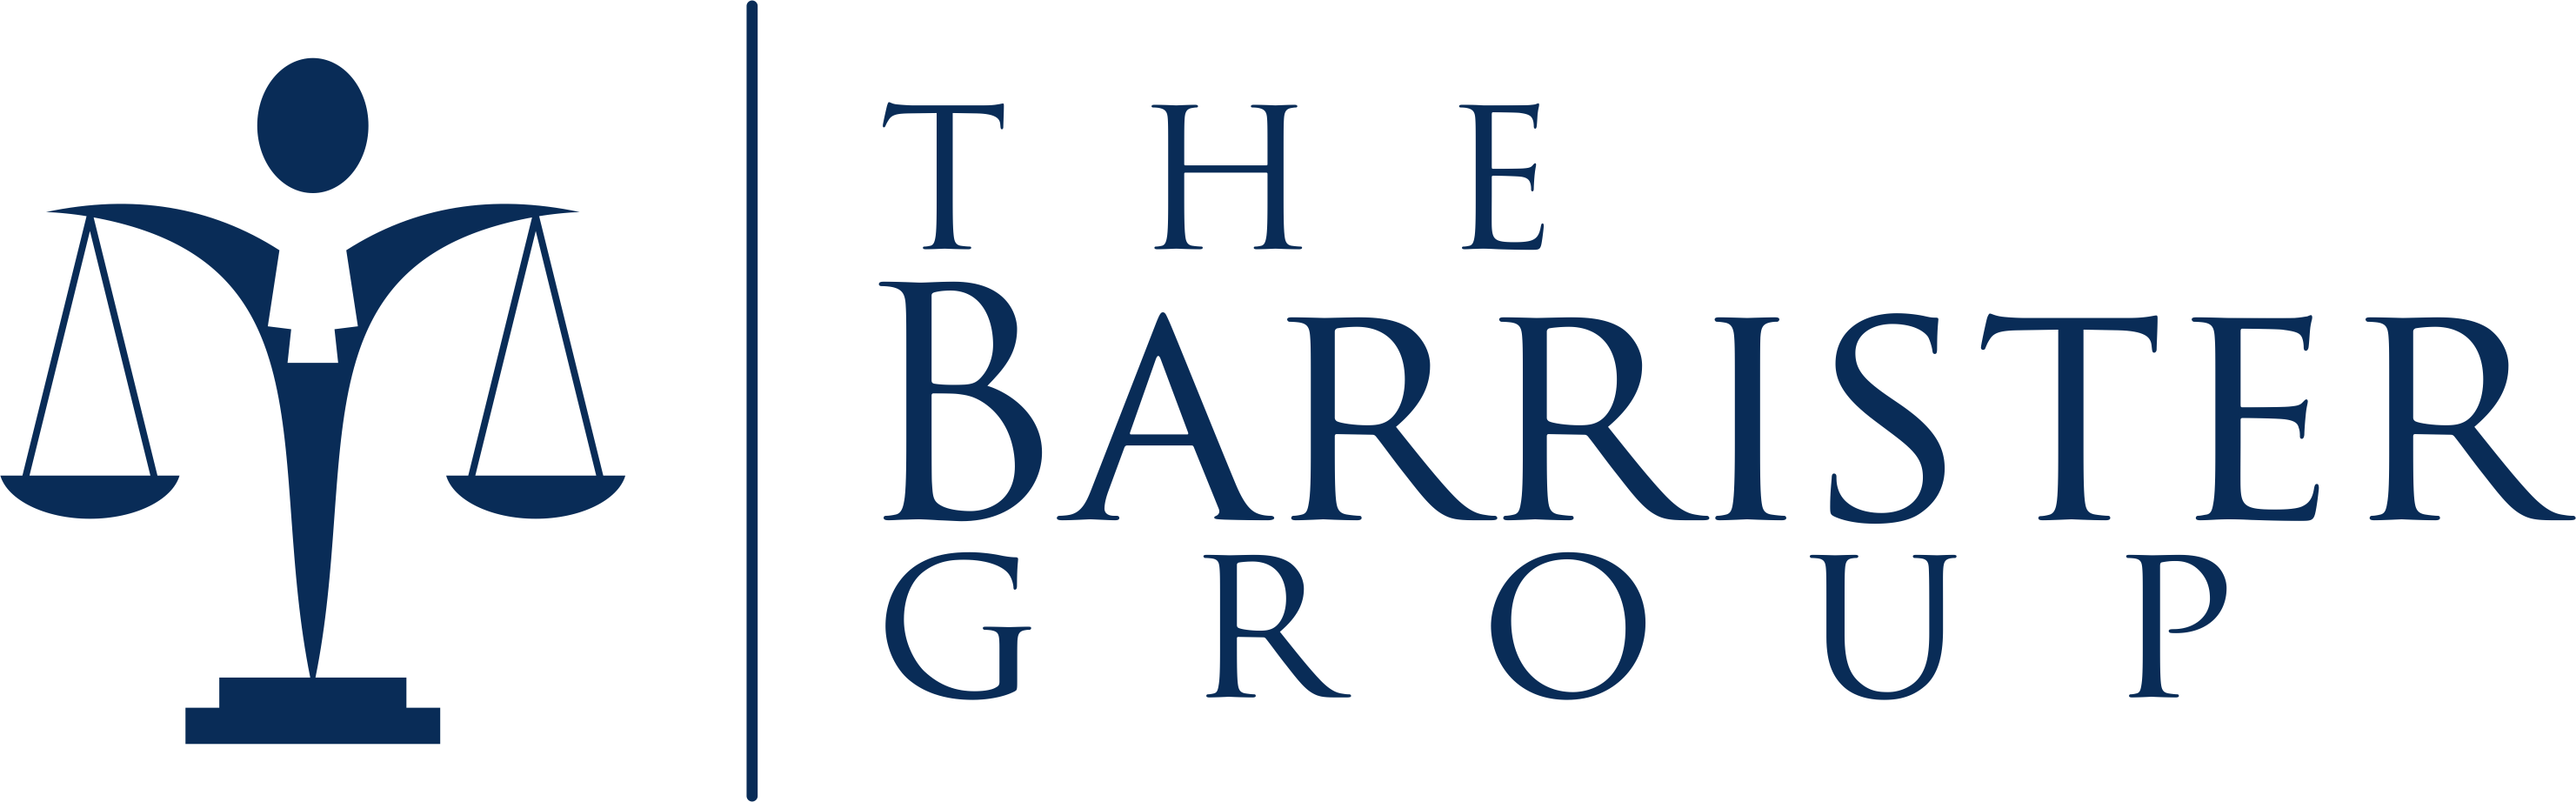 The Barrister Group